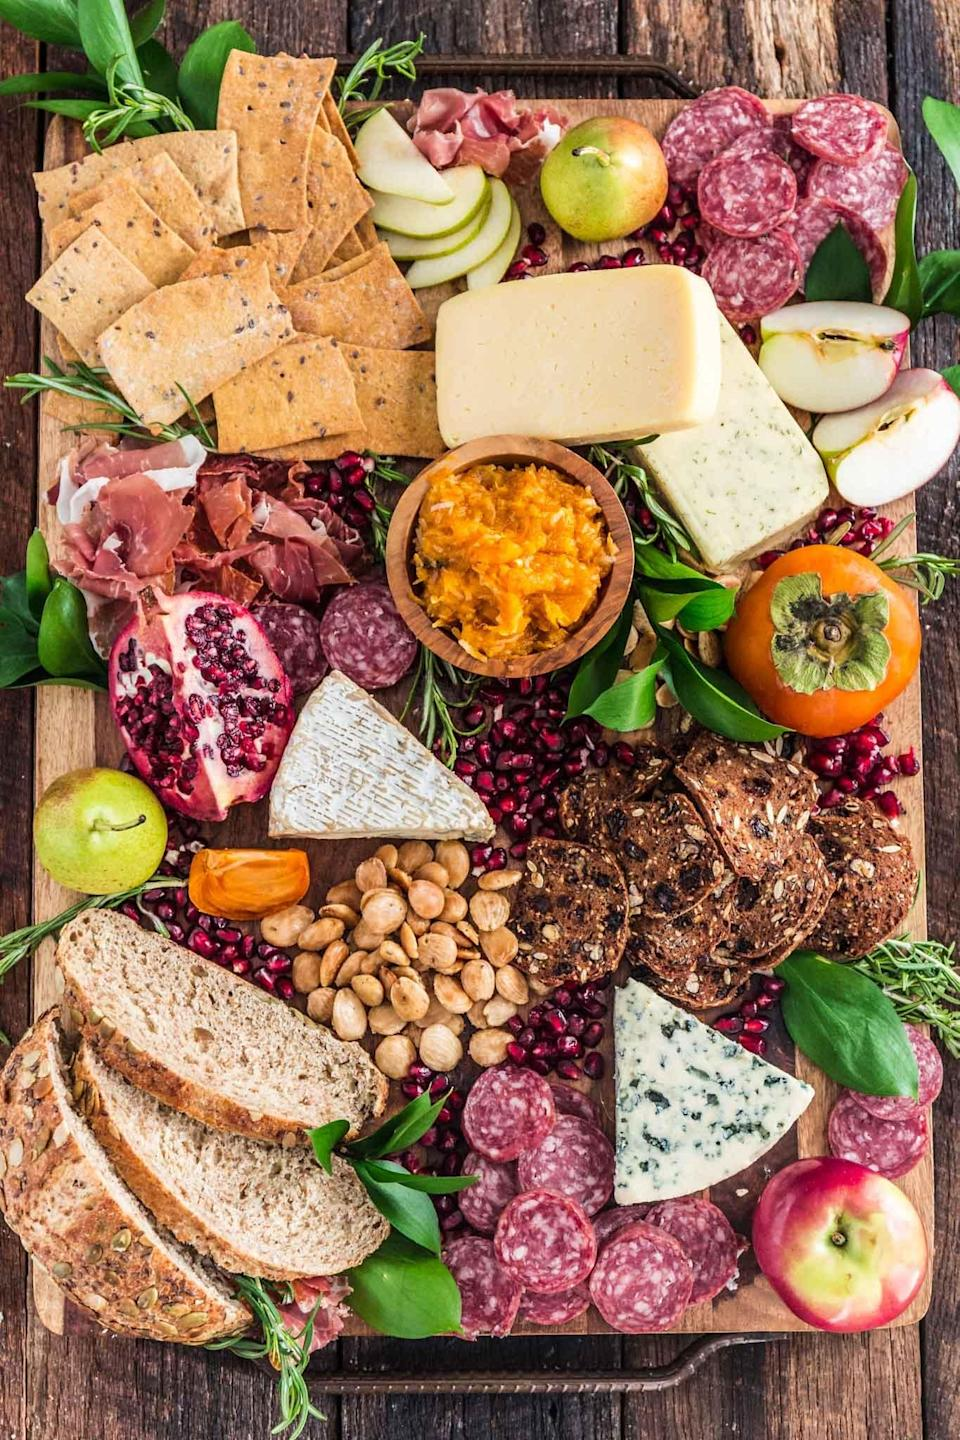 "<p>You can never go wrong with a cheese board, especially when it's fall-themed! This delightful spread includes everything from fig jam and fall fruits to a mouthwatering selection of charcuterie. Pair it with your favorite crackers and bread, and get ready to eat up!</p> <p><strong>Get the recipe:</strong> <a href=""https://www.oliviascuisine.com/fall-harvest-cheese-board/"" class=""link rapid-noclick-resp"" rel=""nofollow noopener"" target=""_blank"" data-ylk=""slk:fall harvest cheese board"">fall harvest cheese board</a></p>"